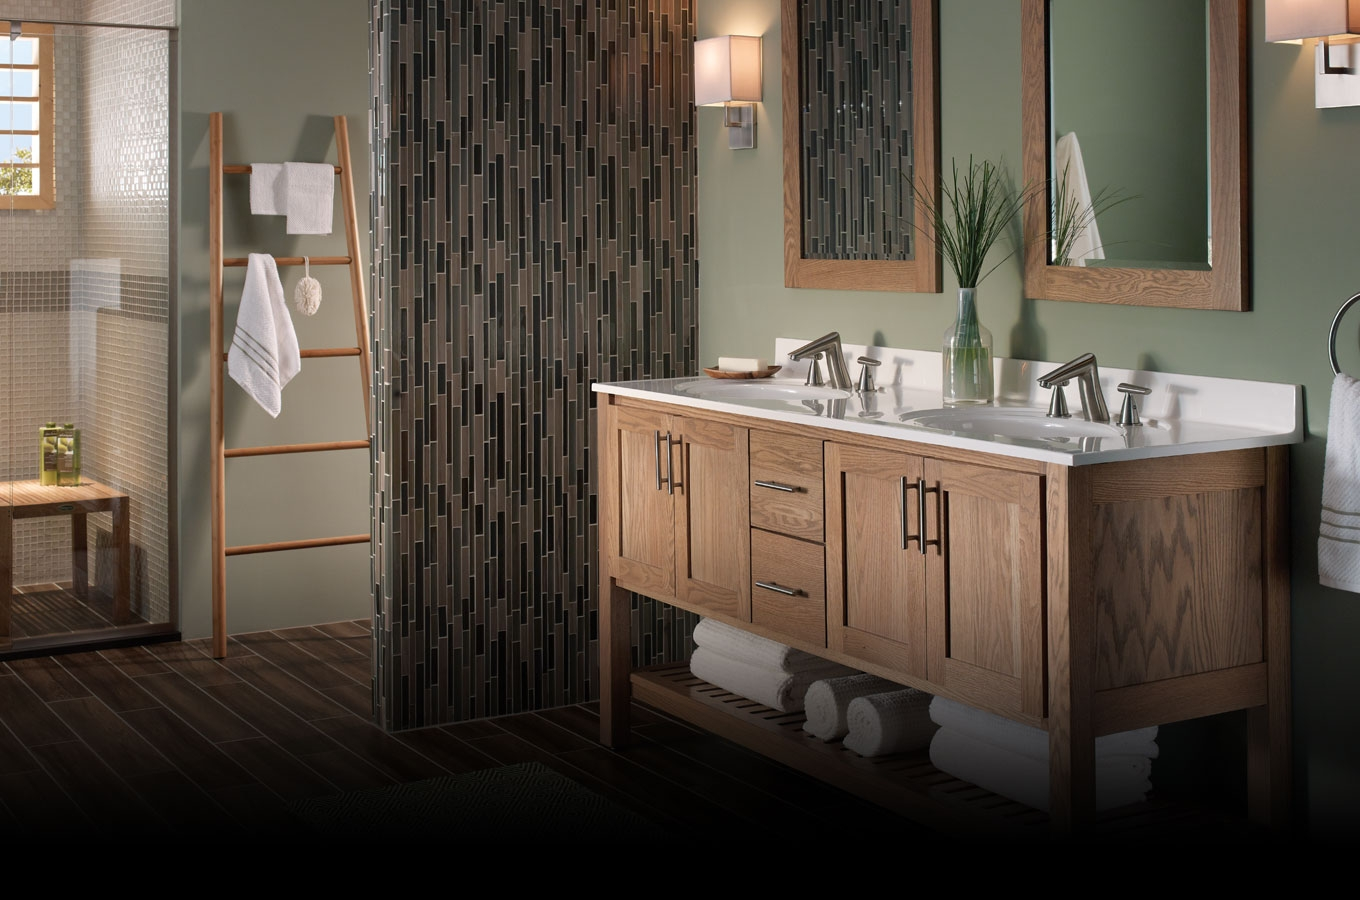 Permalink to Birch Bathroom Vanity Cabinets